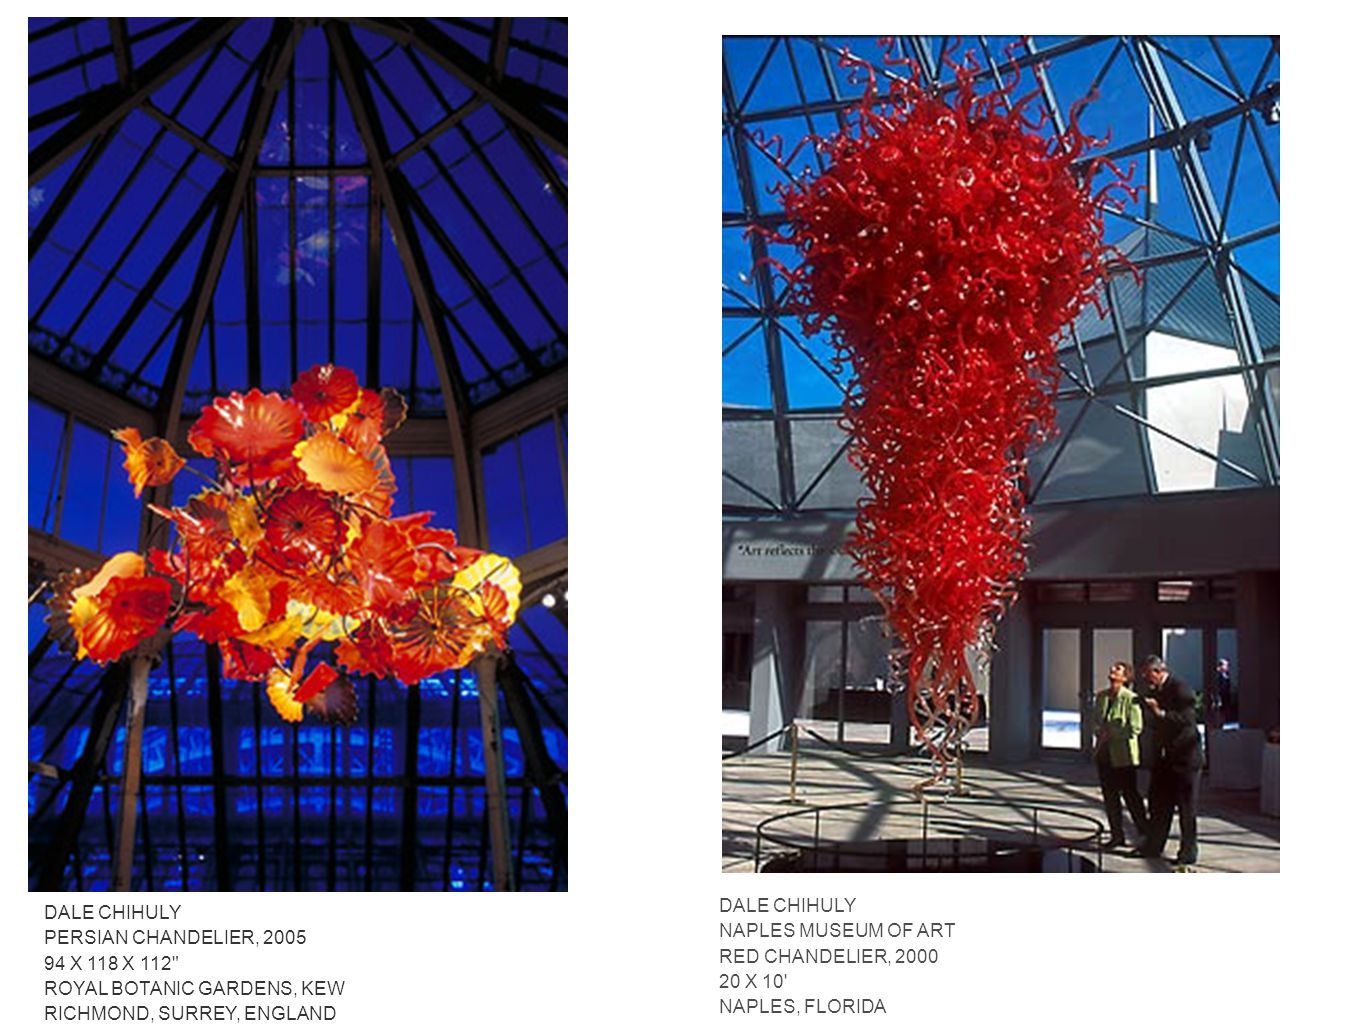 Dale chihuly contemporary artist ppt download dale chihuly naples museum of art red chandelier 2000 20 x 10 naples arubaitofo Image collections